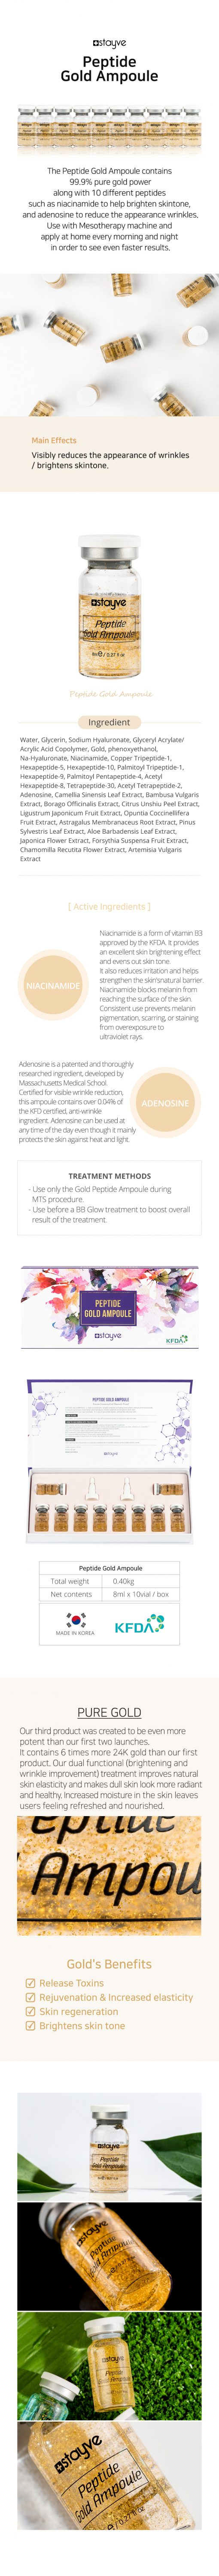 Stayve Peptide Gold Ampoule Information & Ingredients